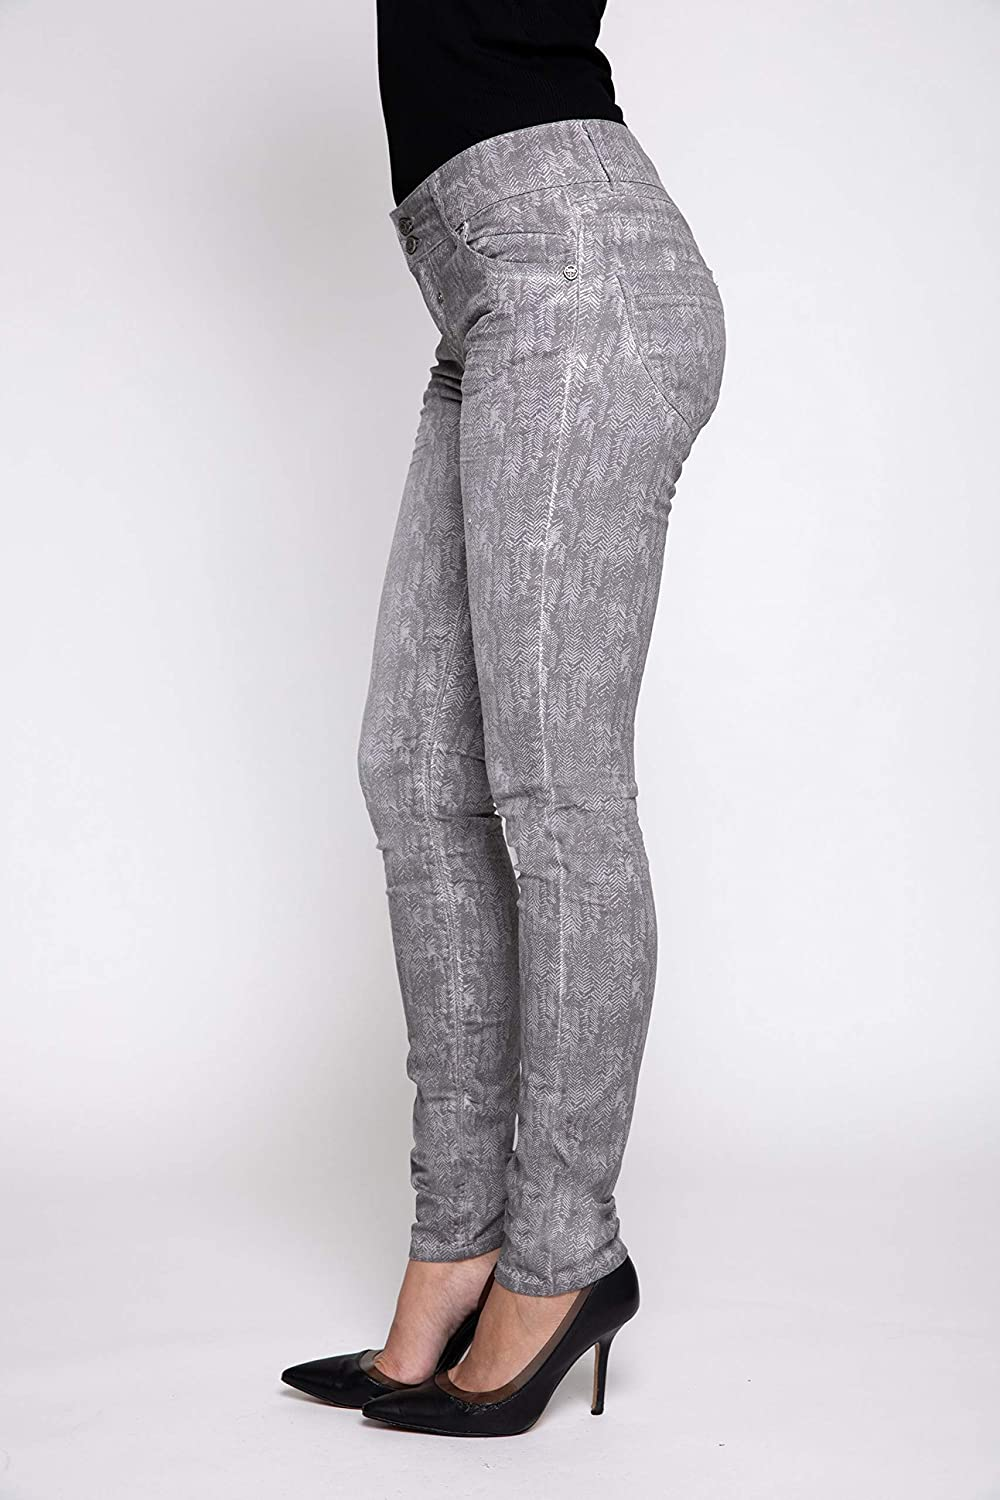 Coccara Bella Pantalon pour femme Non Denim Vintage Slim Fit Cn163 - Grey.